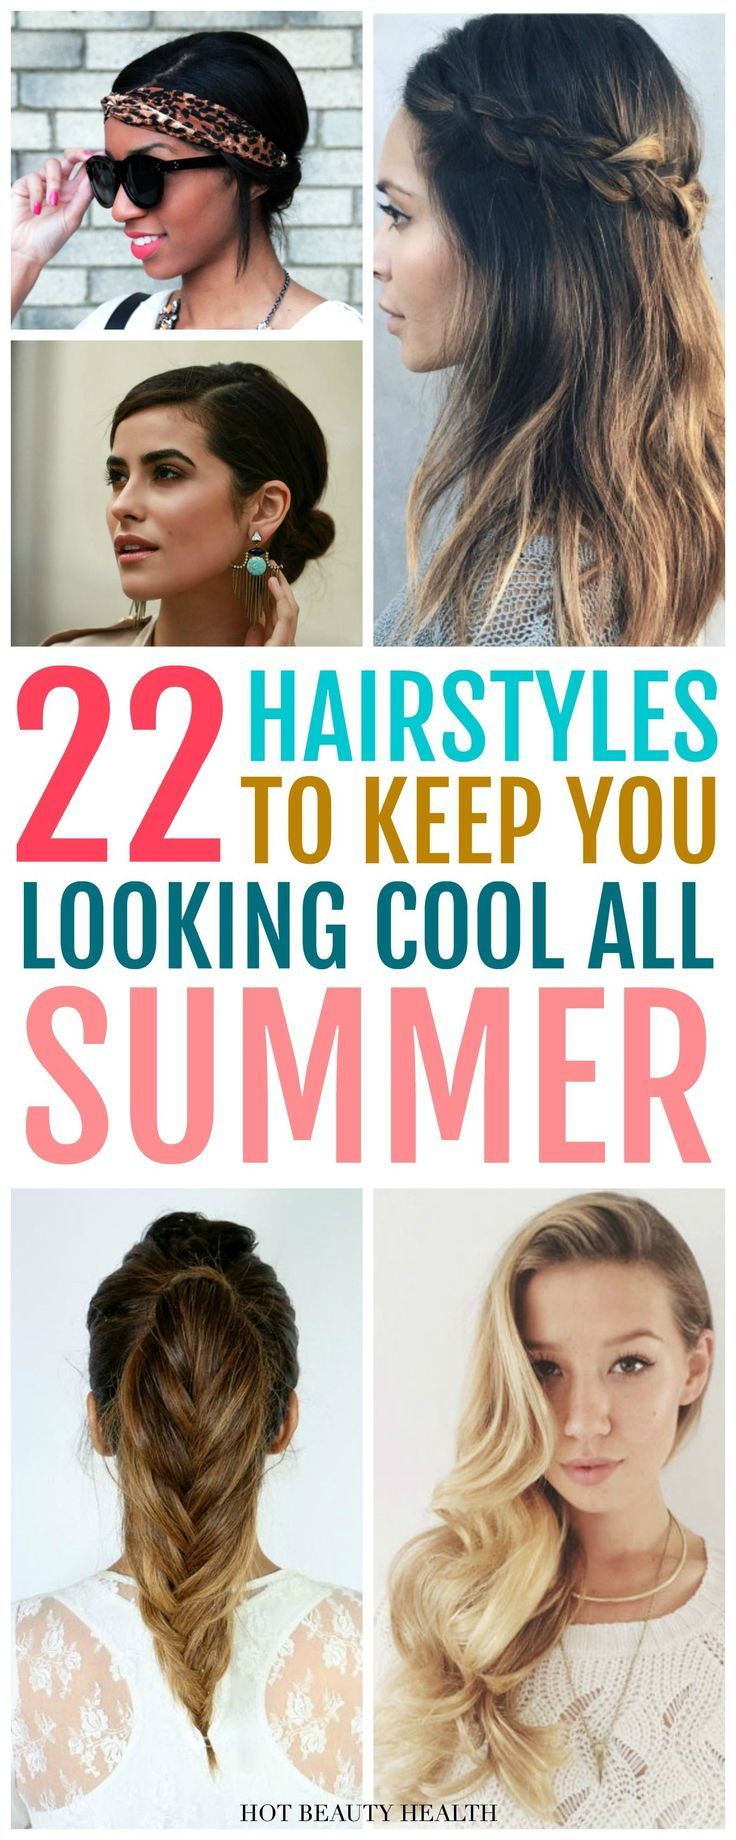 trendy u easy summer hairstyles can my hair do that